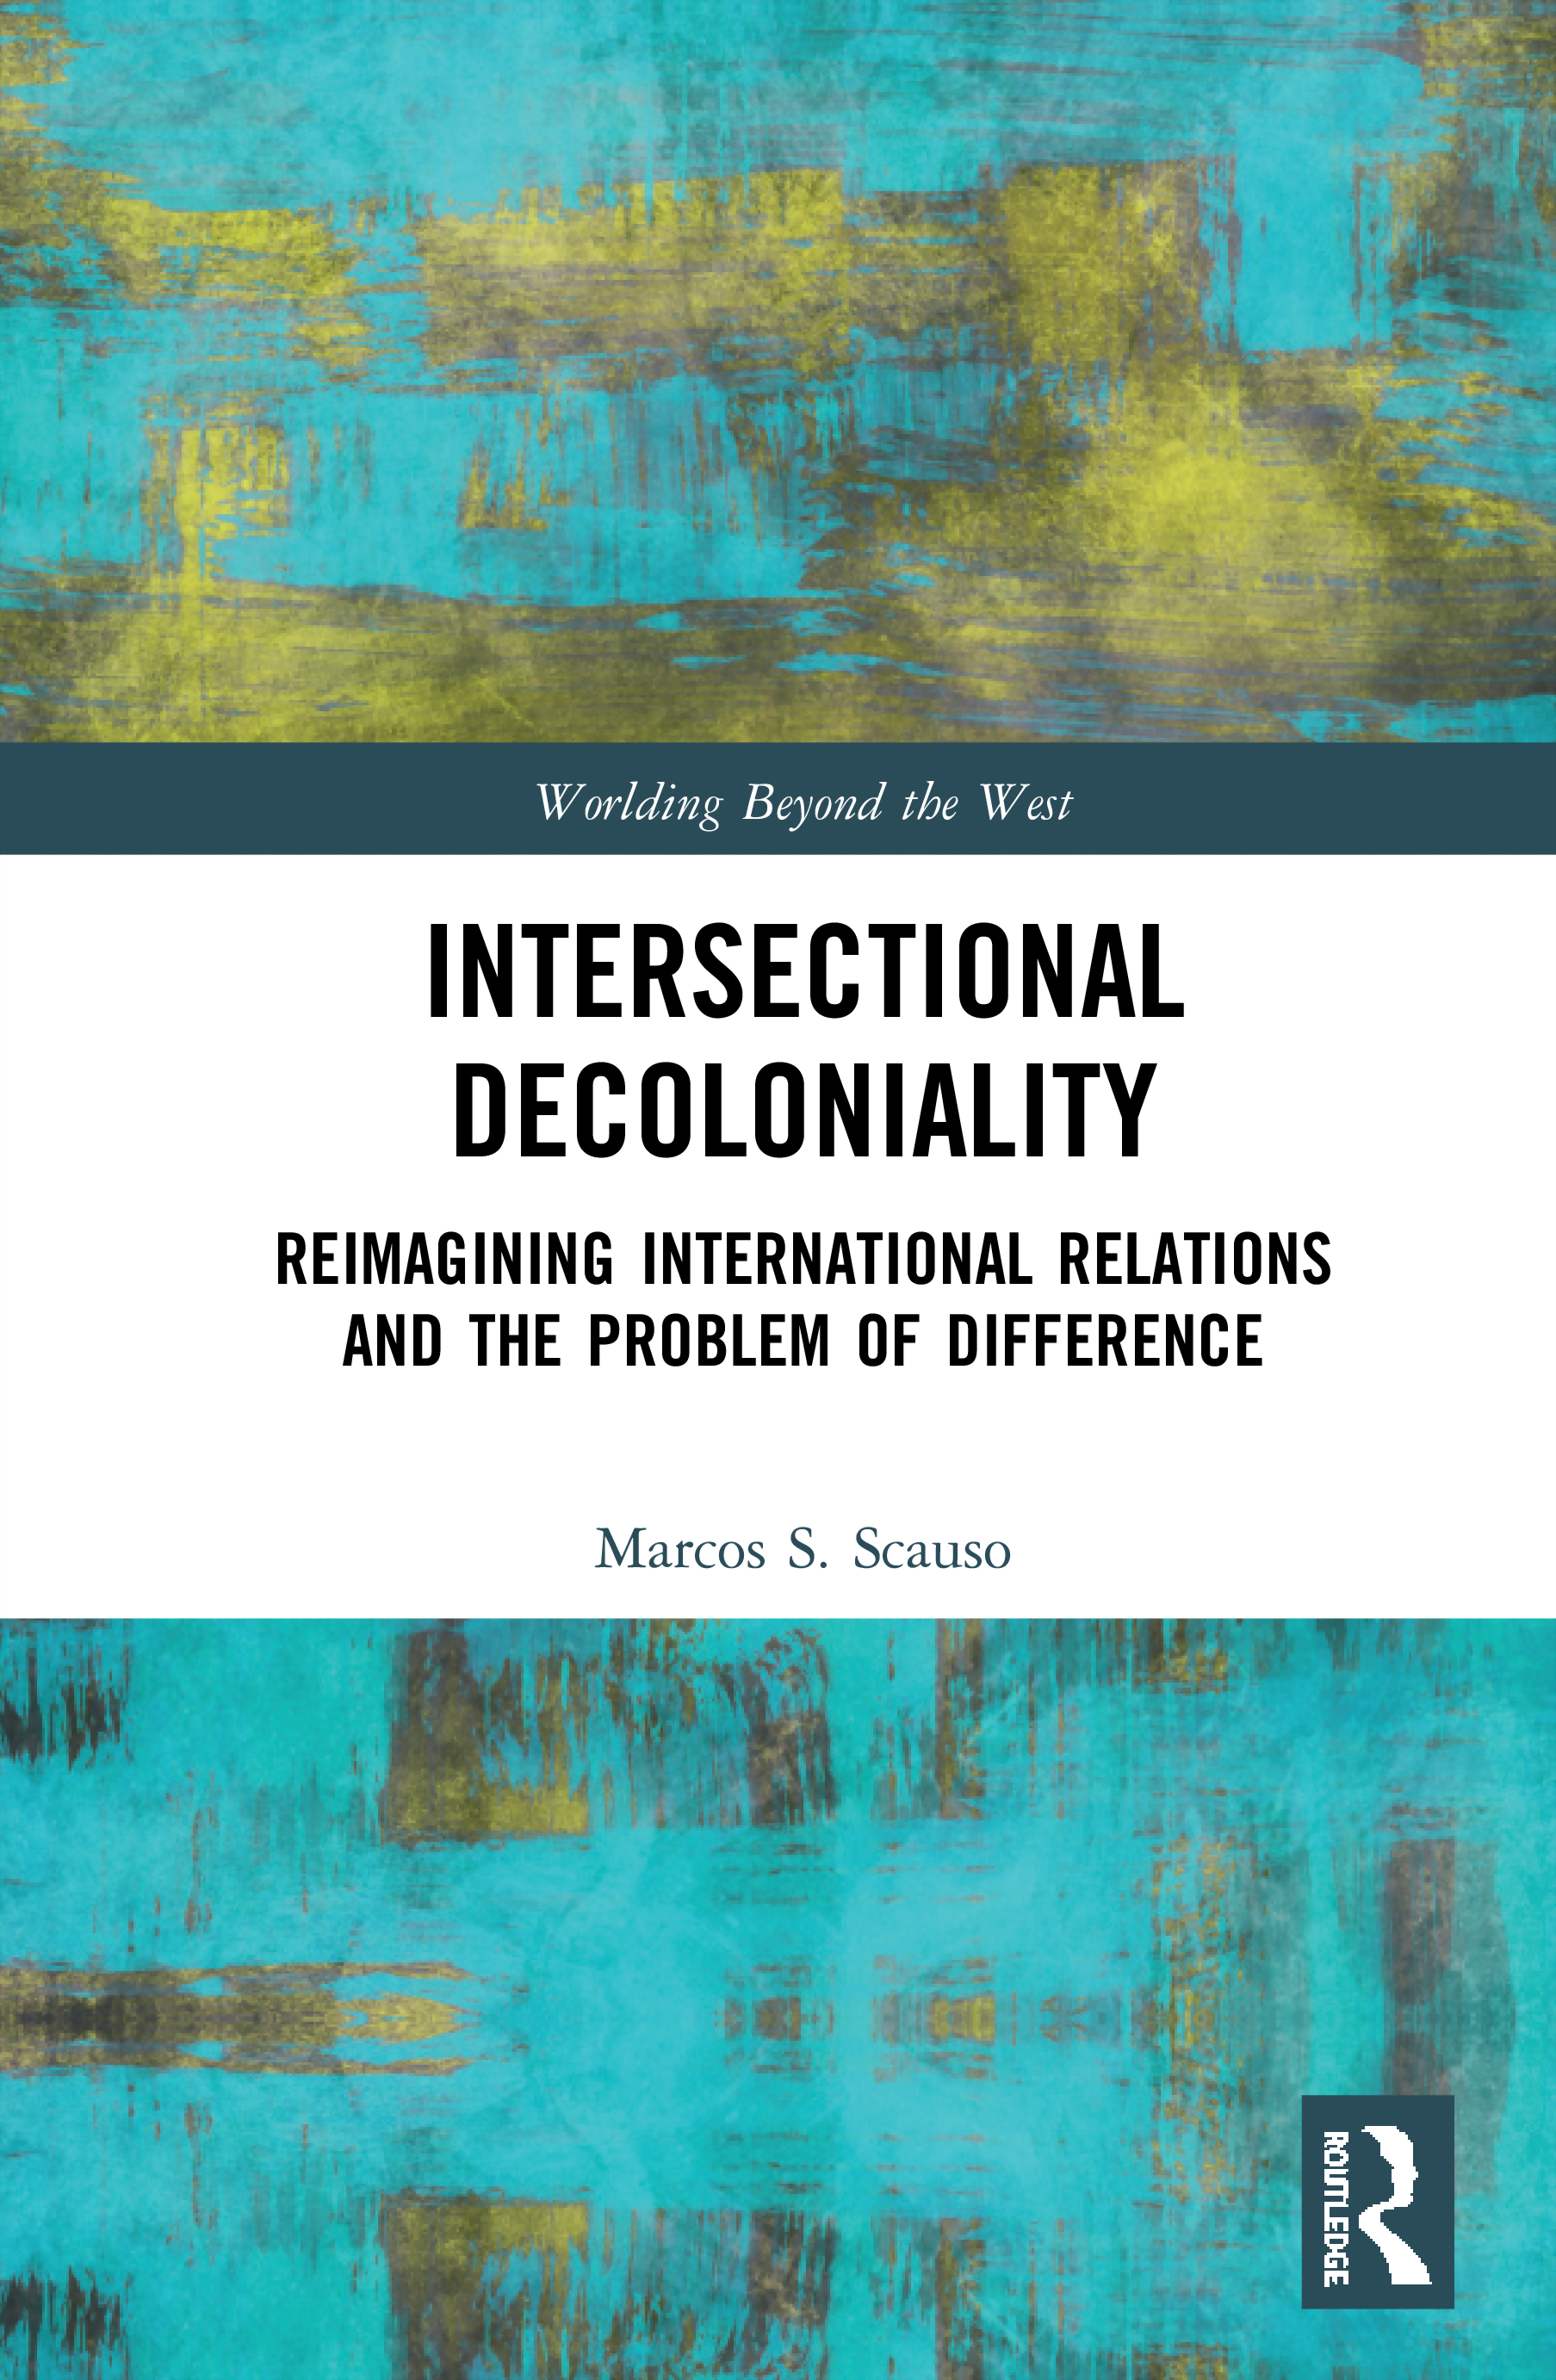 Intersectional Decoloniality: Reimagining International Relations and the Problem of Difference book cover